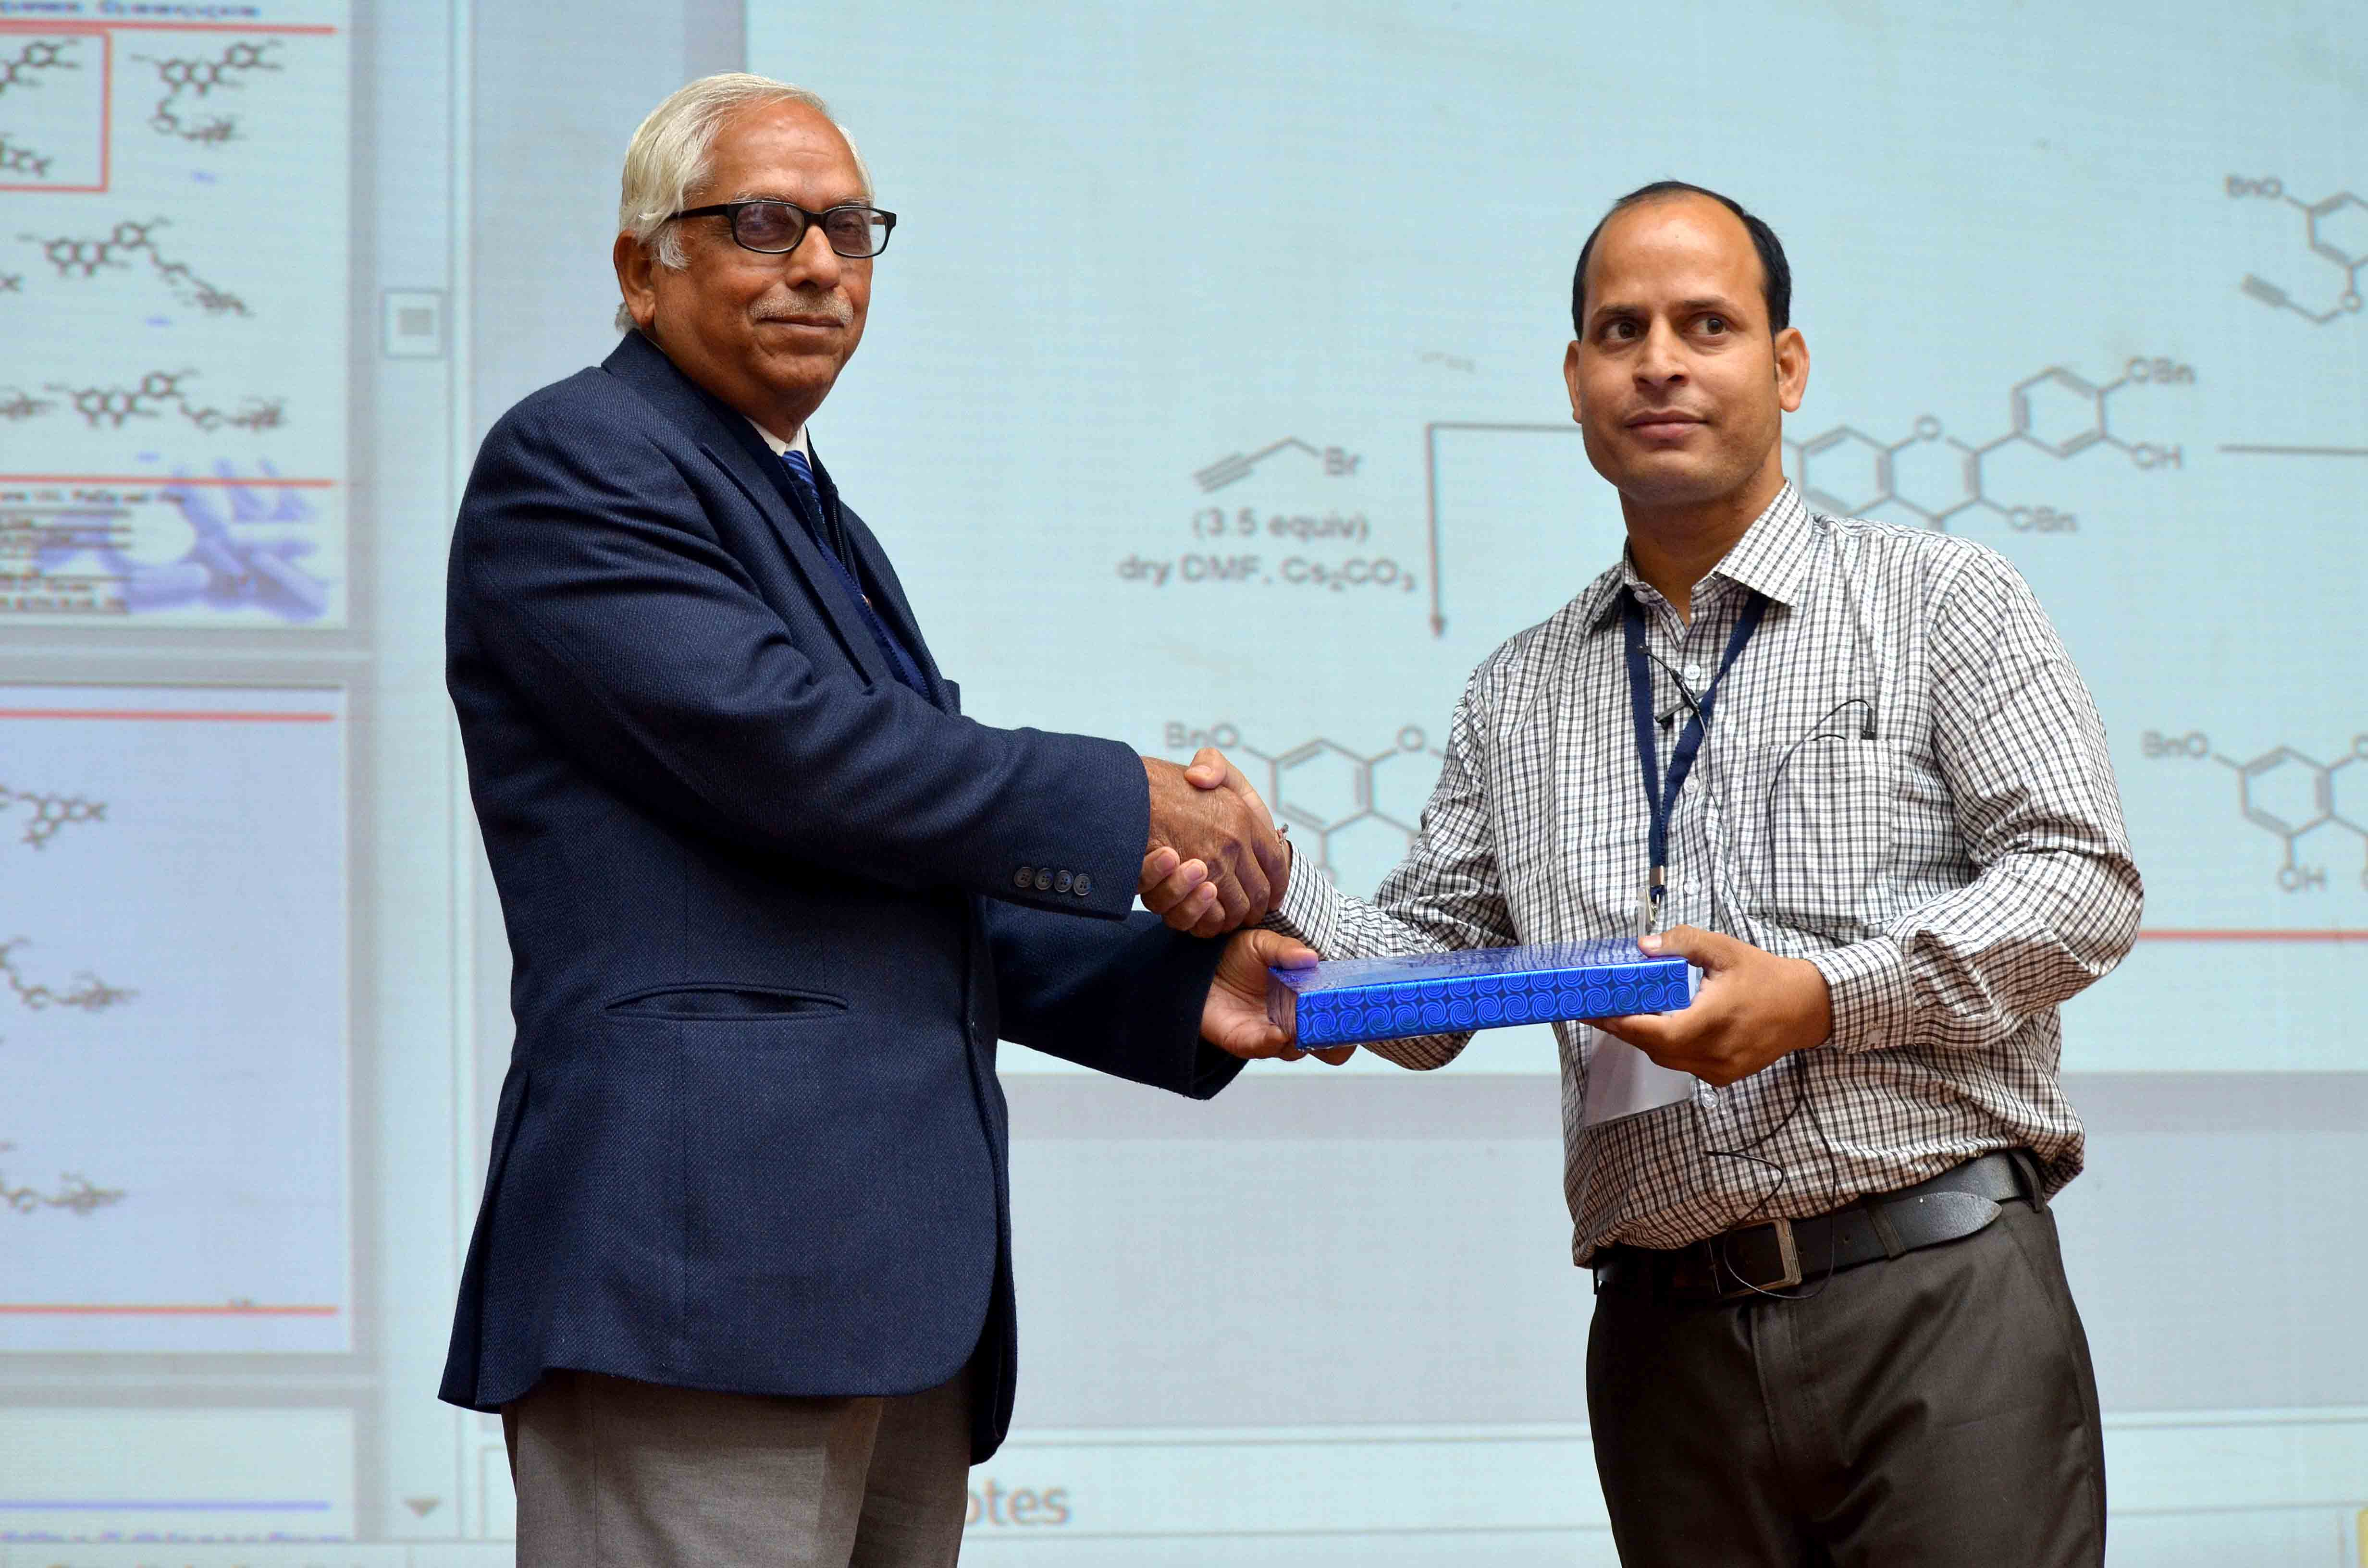 ijp best thesis award 2014